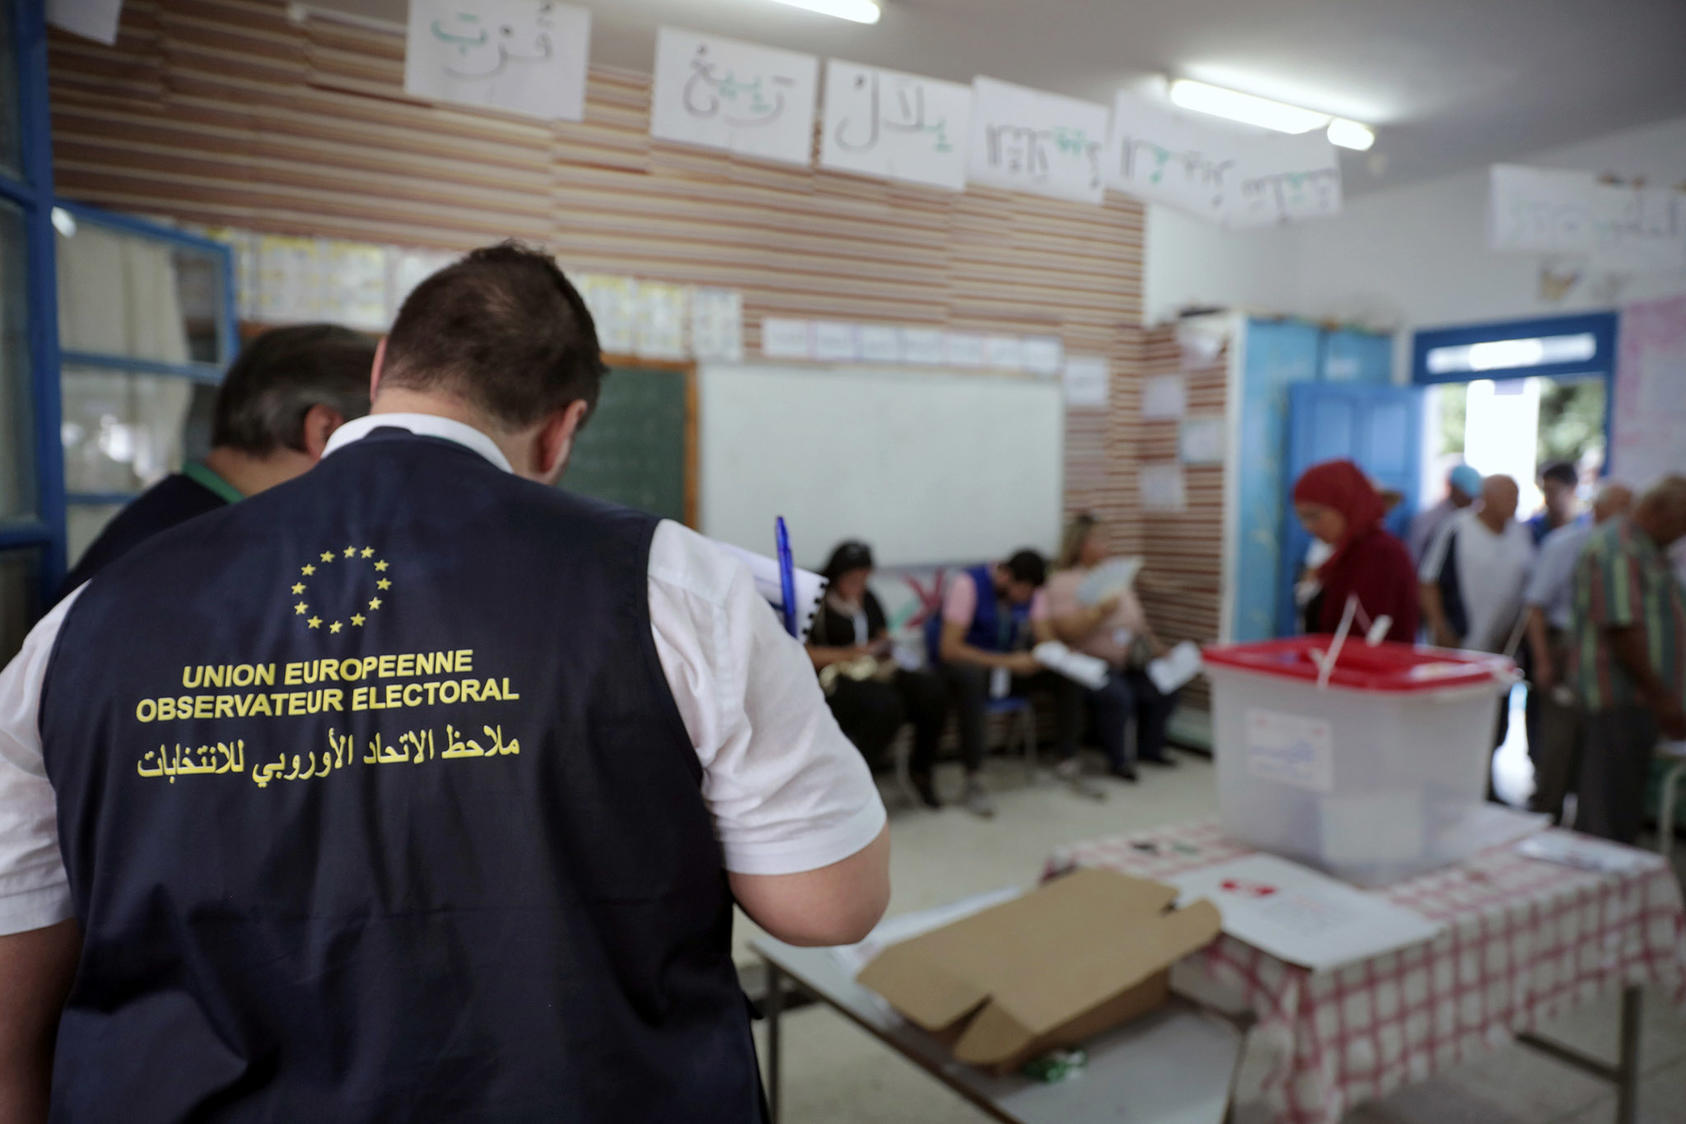 Observers from the European Union monitor the election process inside a polling station outside Tunis during the first round of the presidential election on September 15, 2019. (Mosa'ab Elshamy/AP)